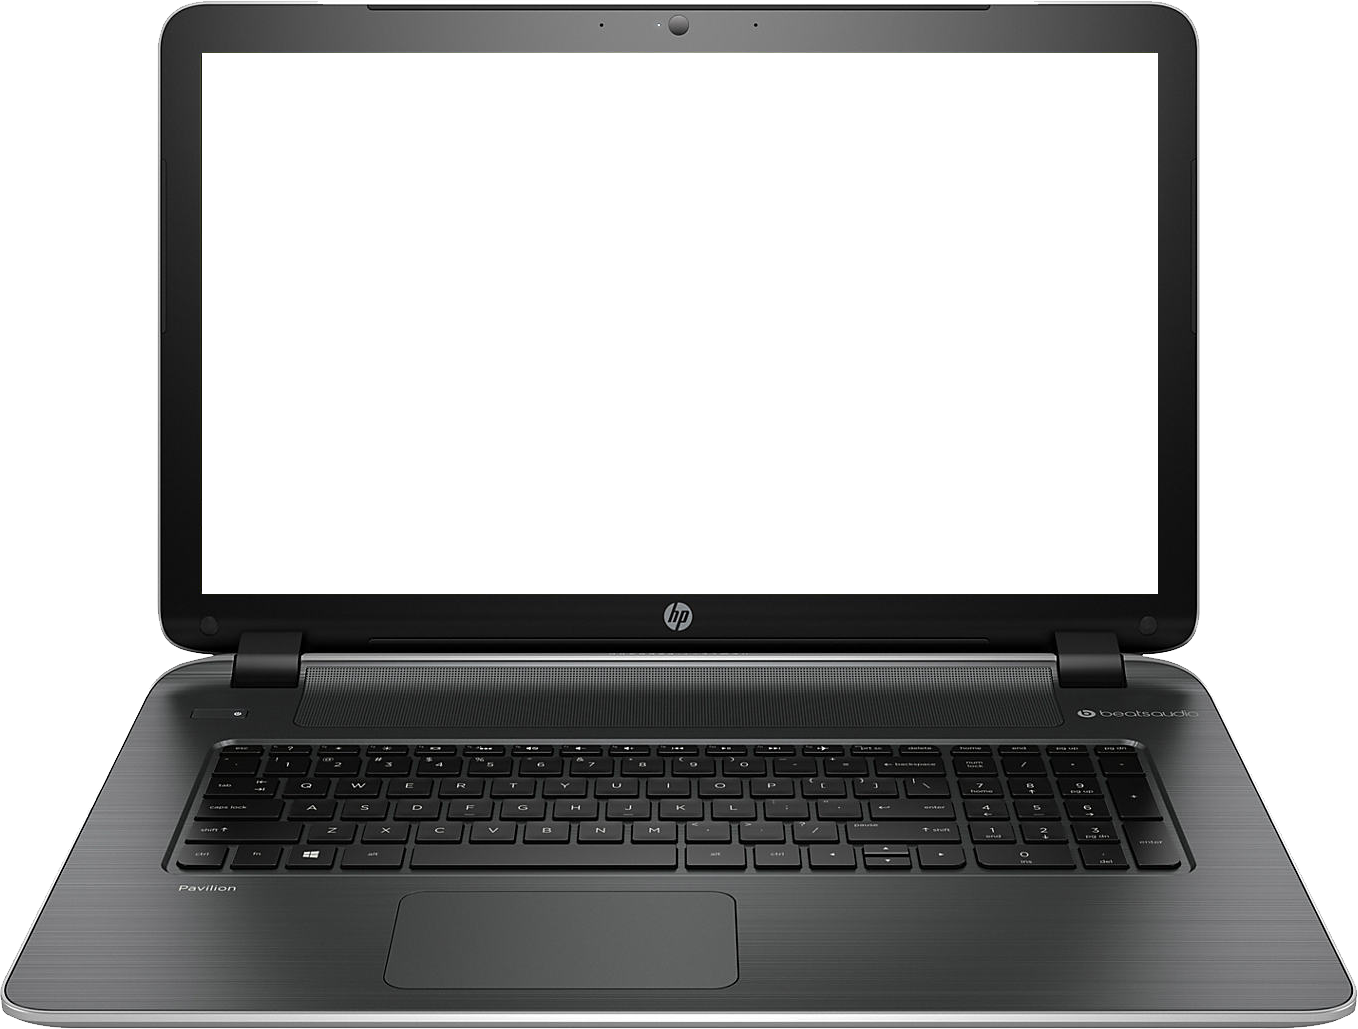 Laptop clipart #4, Download drawings